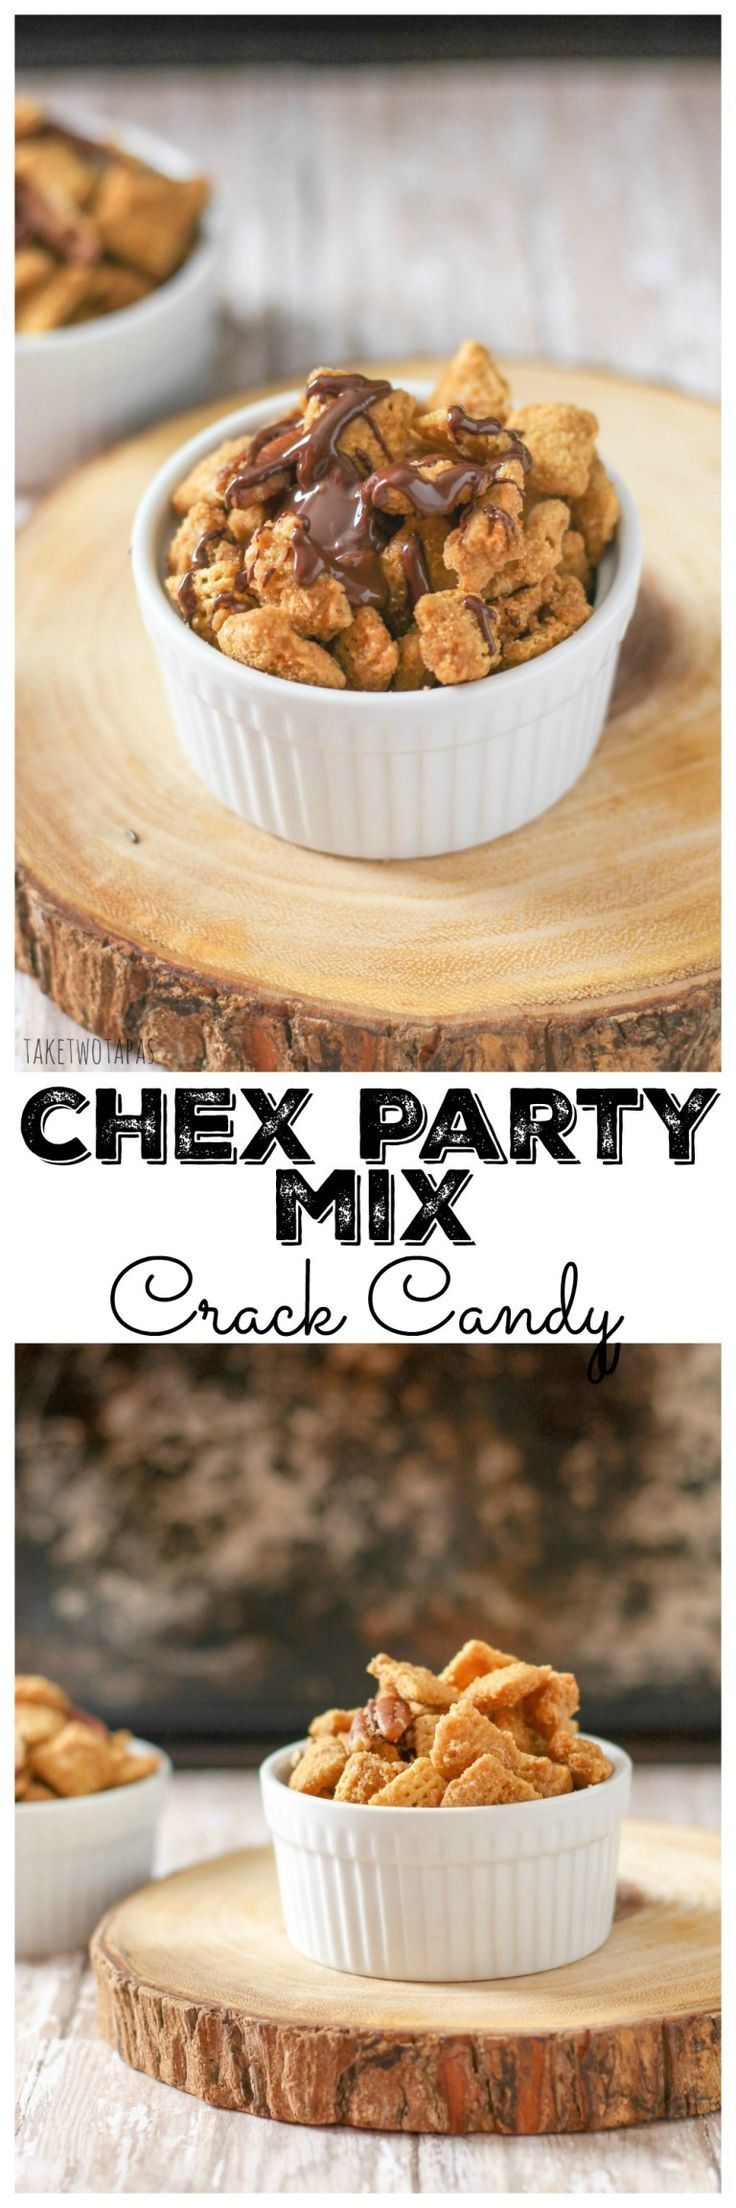 This iconic Chex Mix recipe is made from Rice and Corn Chex and covered in a crunchy caramel coating that contains a dash of cinnamon. This Chex Mix Crack Recipe also has a dark chocolate drizzle on it for another touch of sweetness. Crack Chex Party Mix Recipe | Take Two Tapas